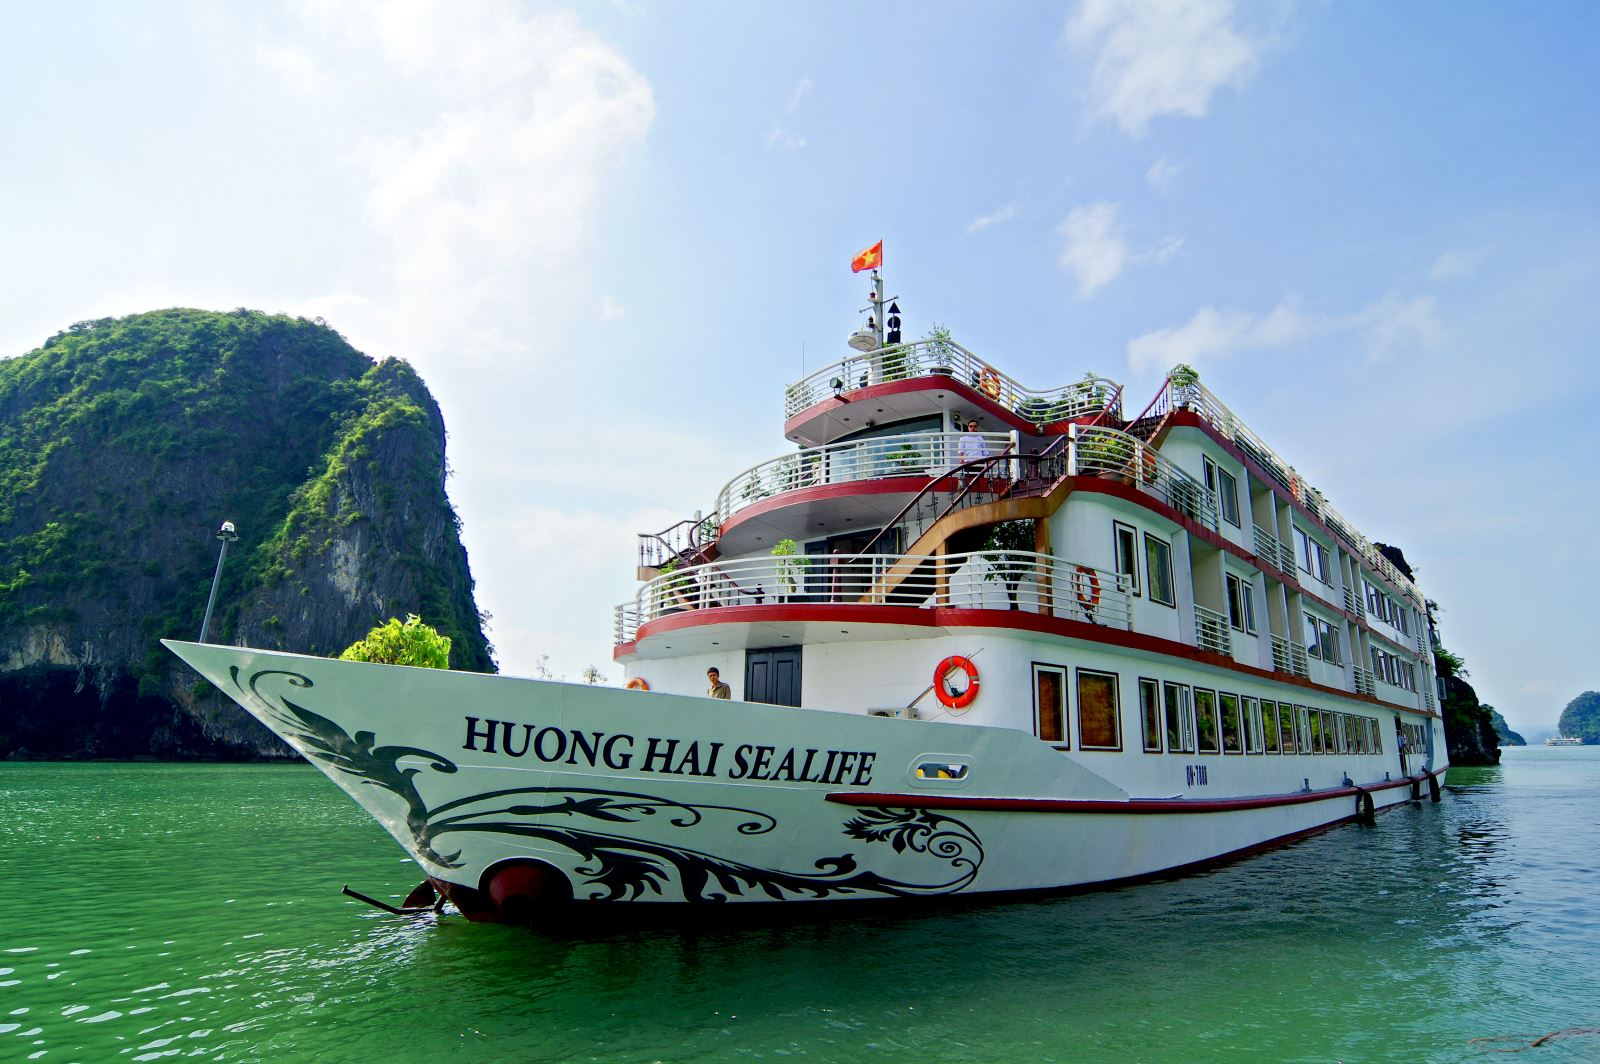 Halong huong hai sealife cruise.jpg